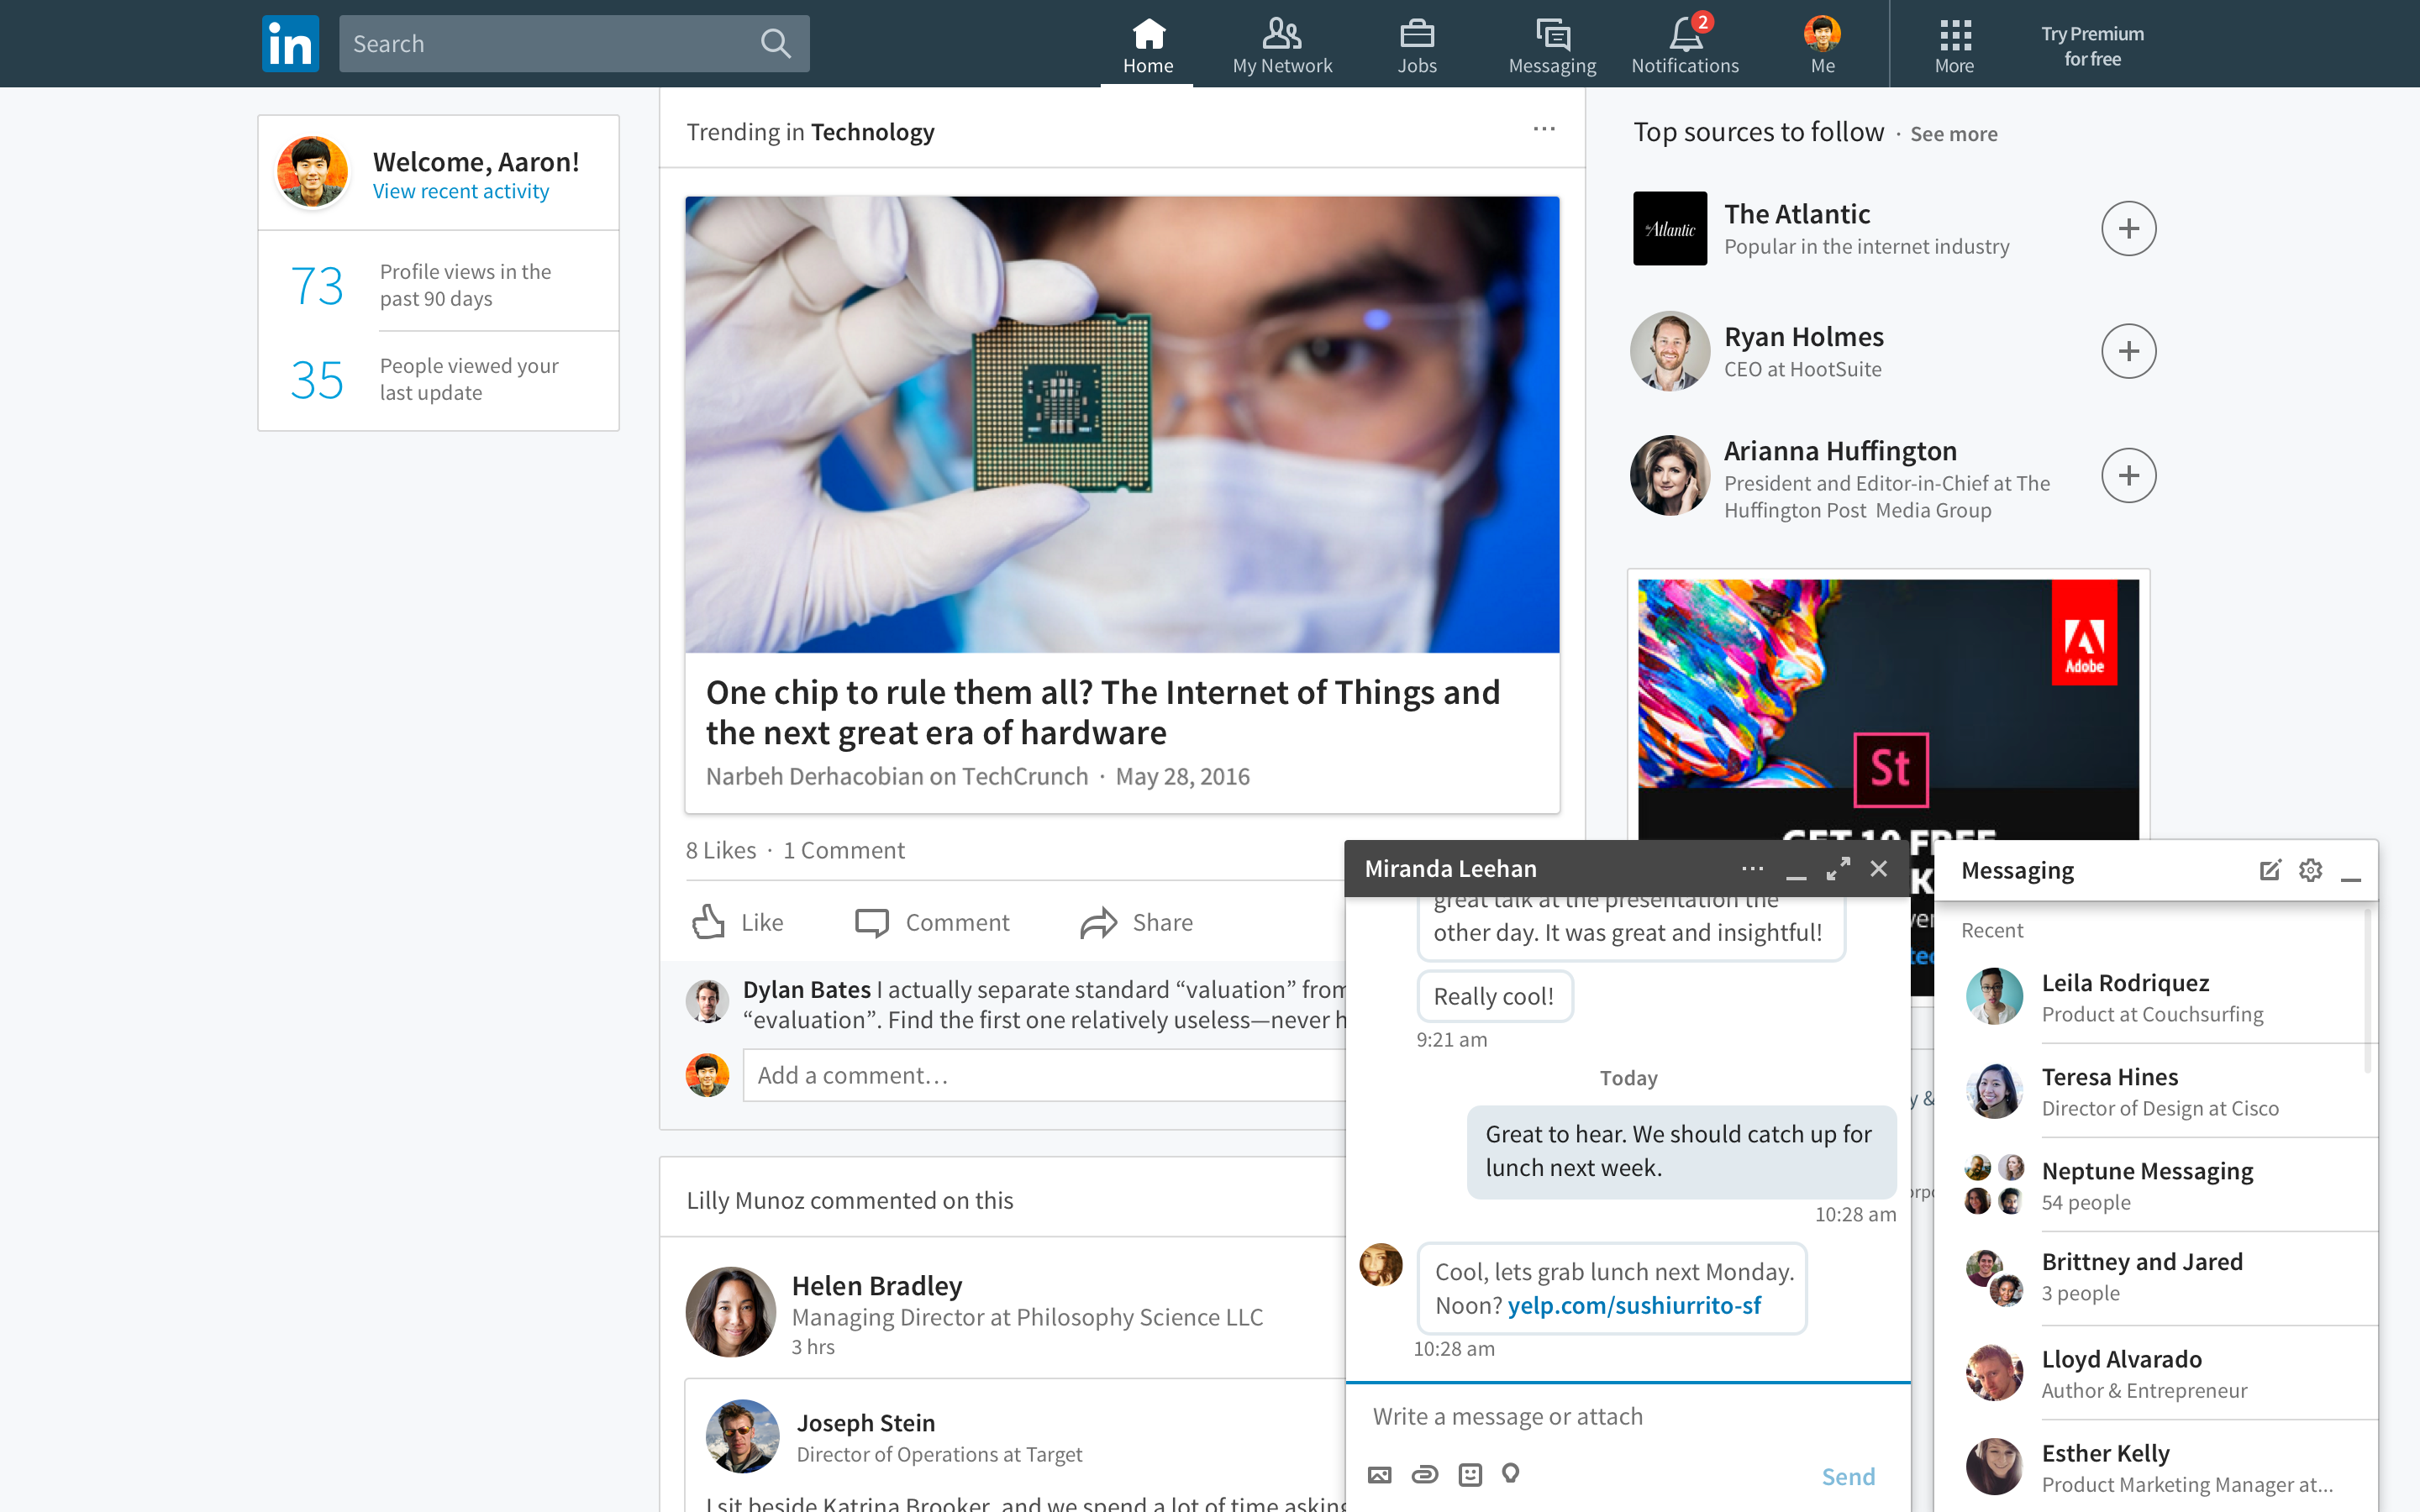 LinkedIn Debuts New Desktop Version With 'chatbots', New